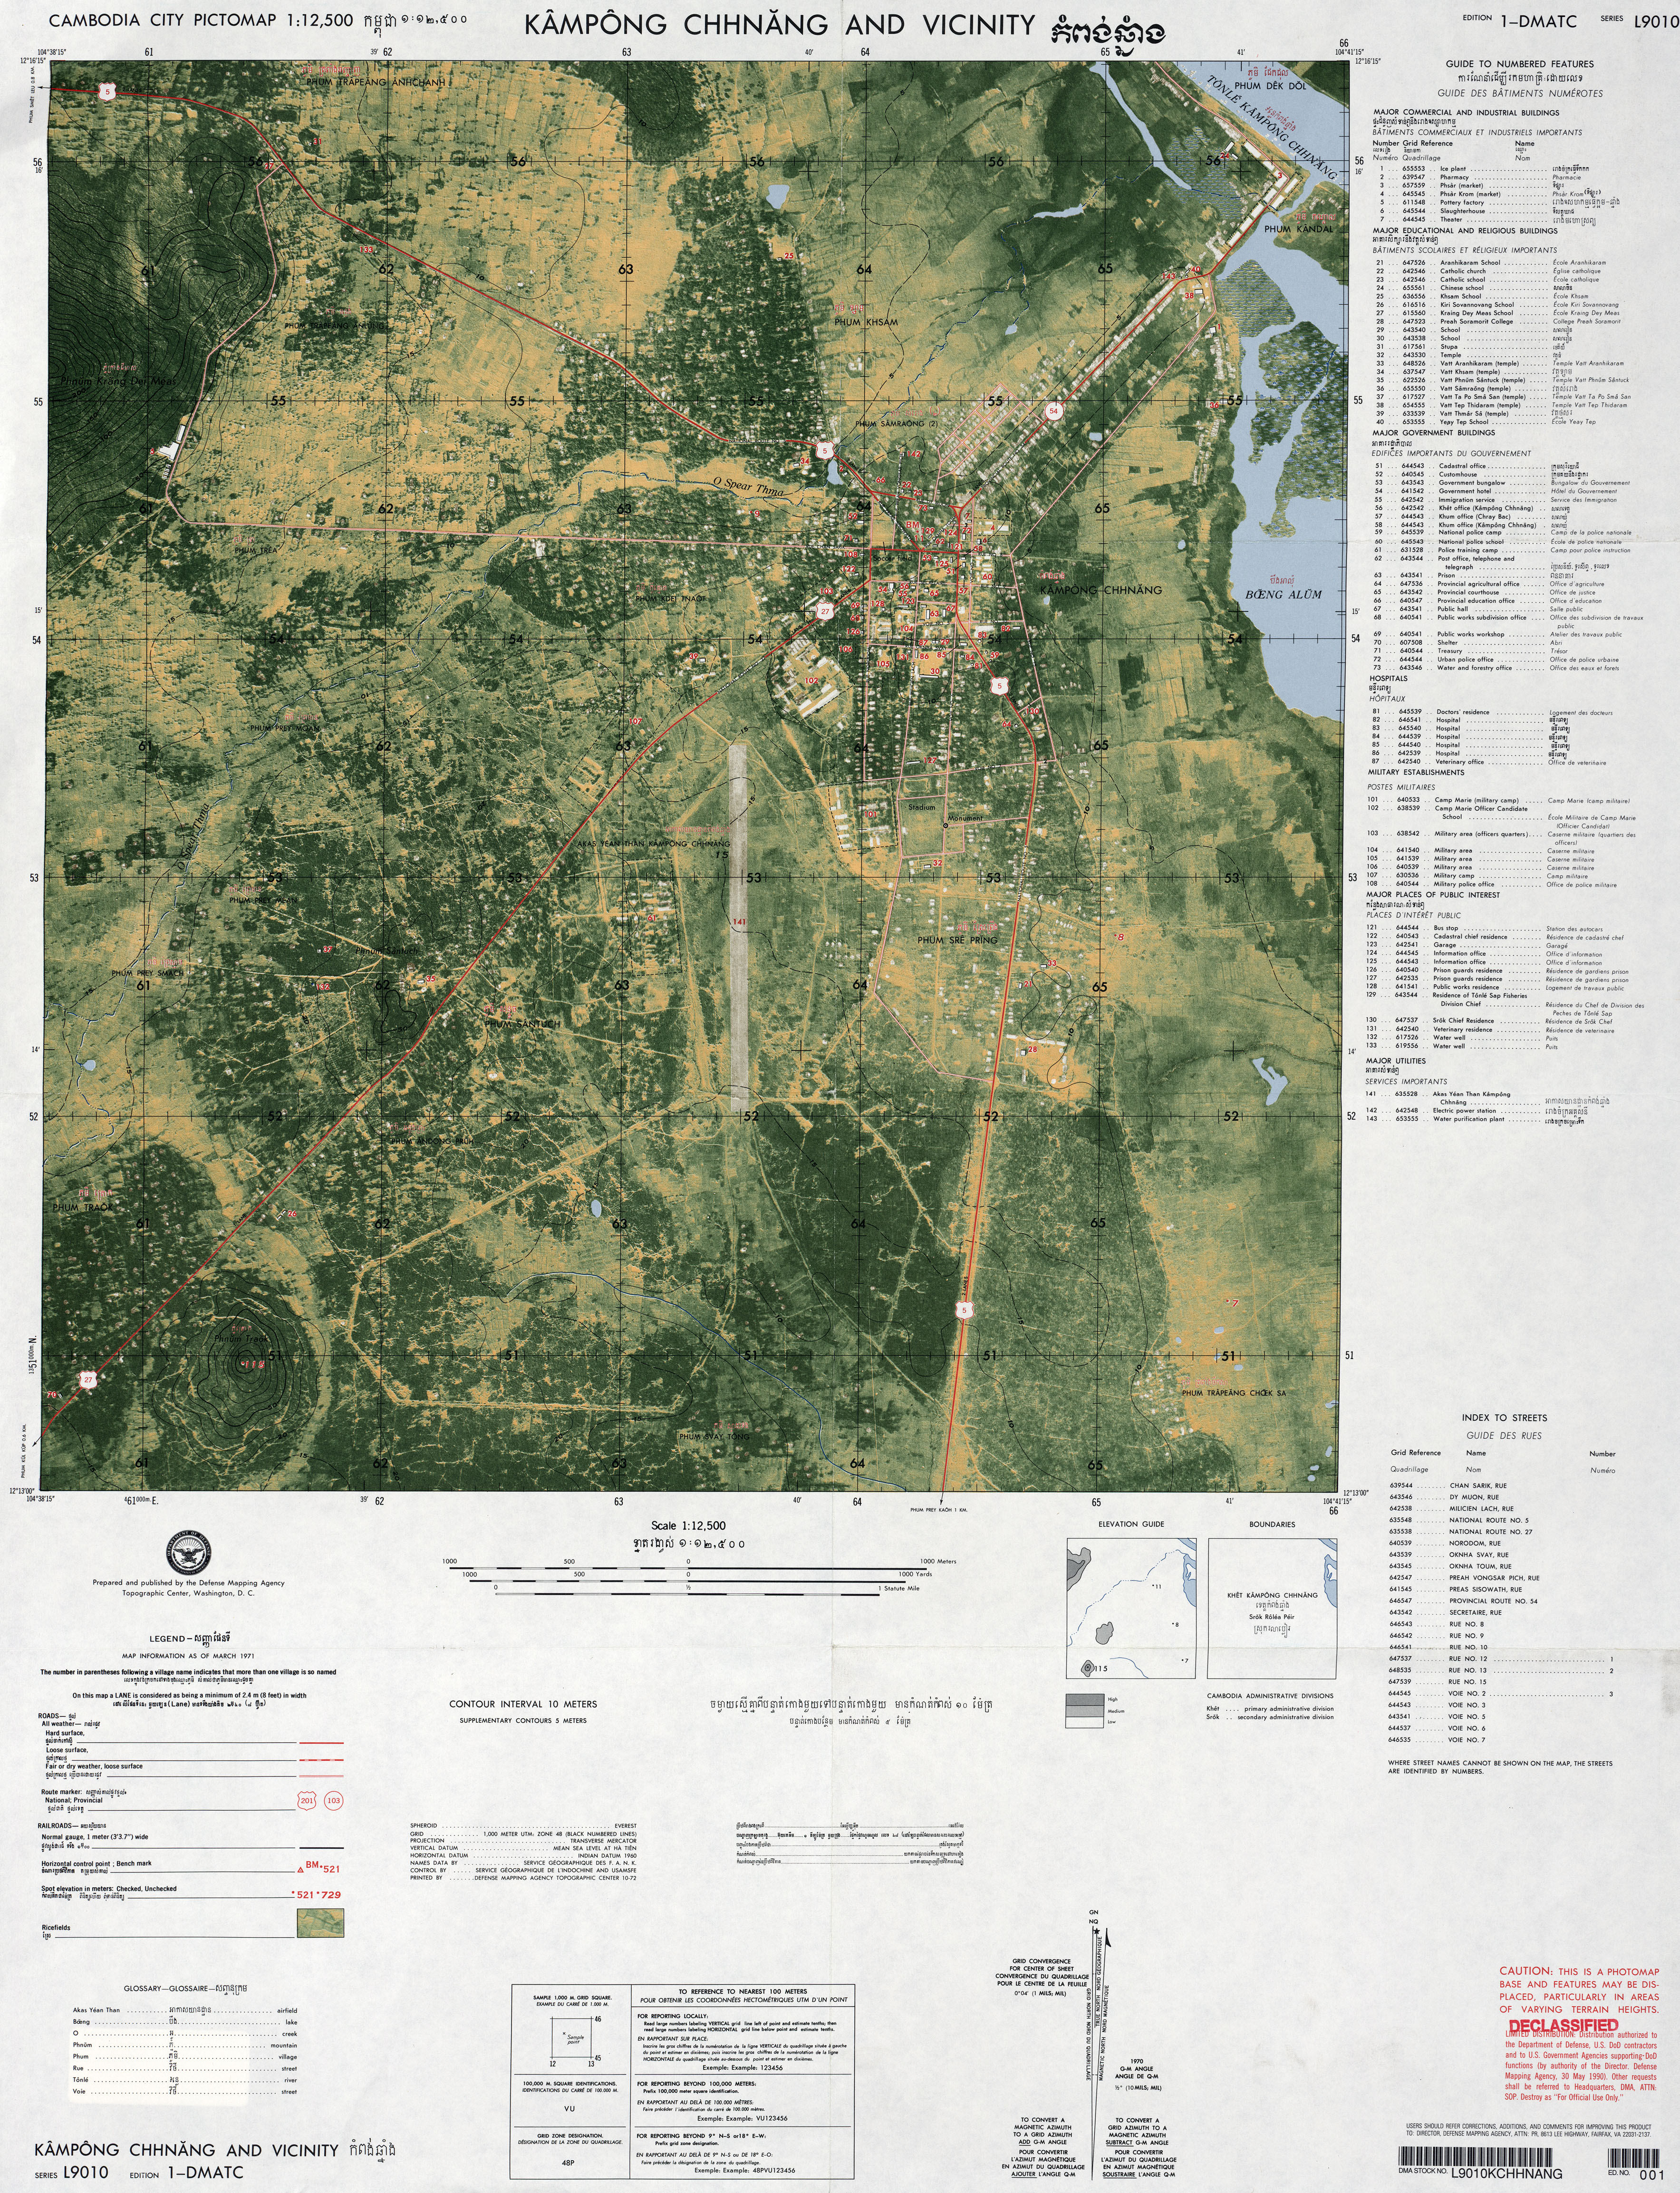 U S Defense Mapping Agency Topographic Center Pictomap 1971 4 4mb